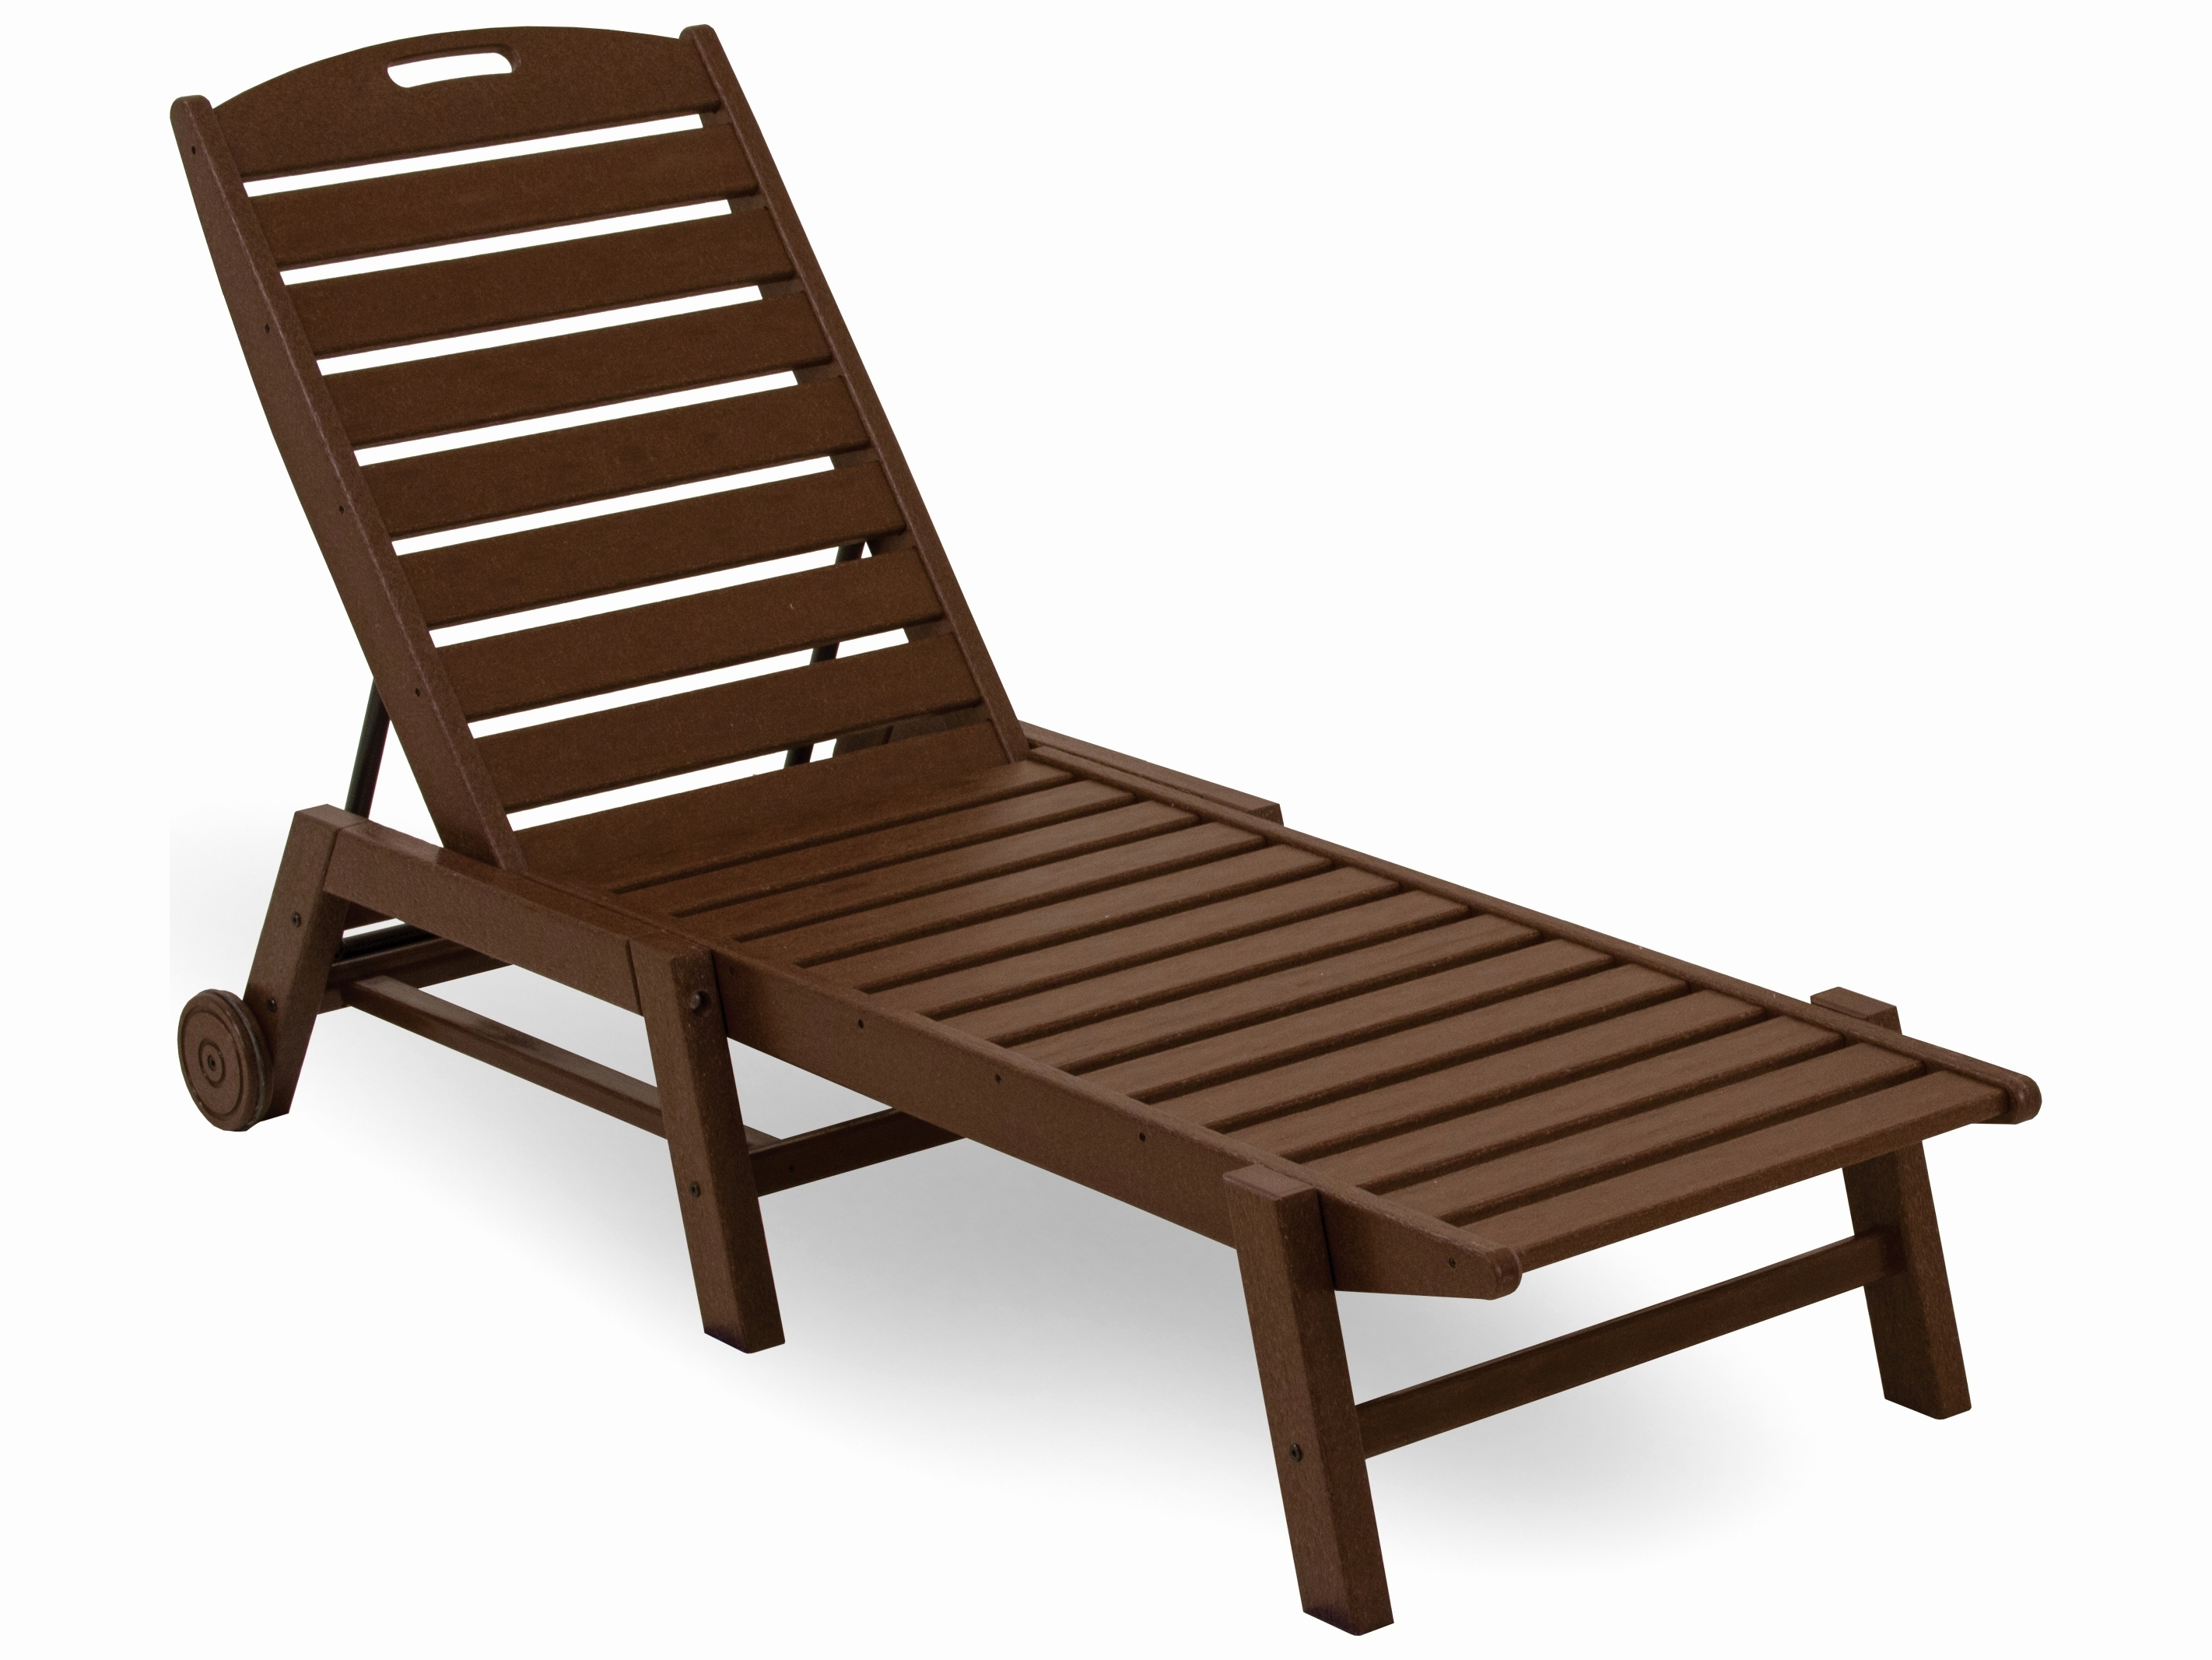 Adams Chaise Lounges Within Most Up To Date Convertible Chair : Hard Plastic Chaise Lounge Chairs Outdoor (View 5 of 15)